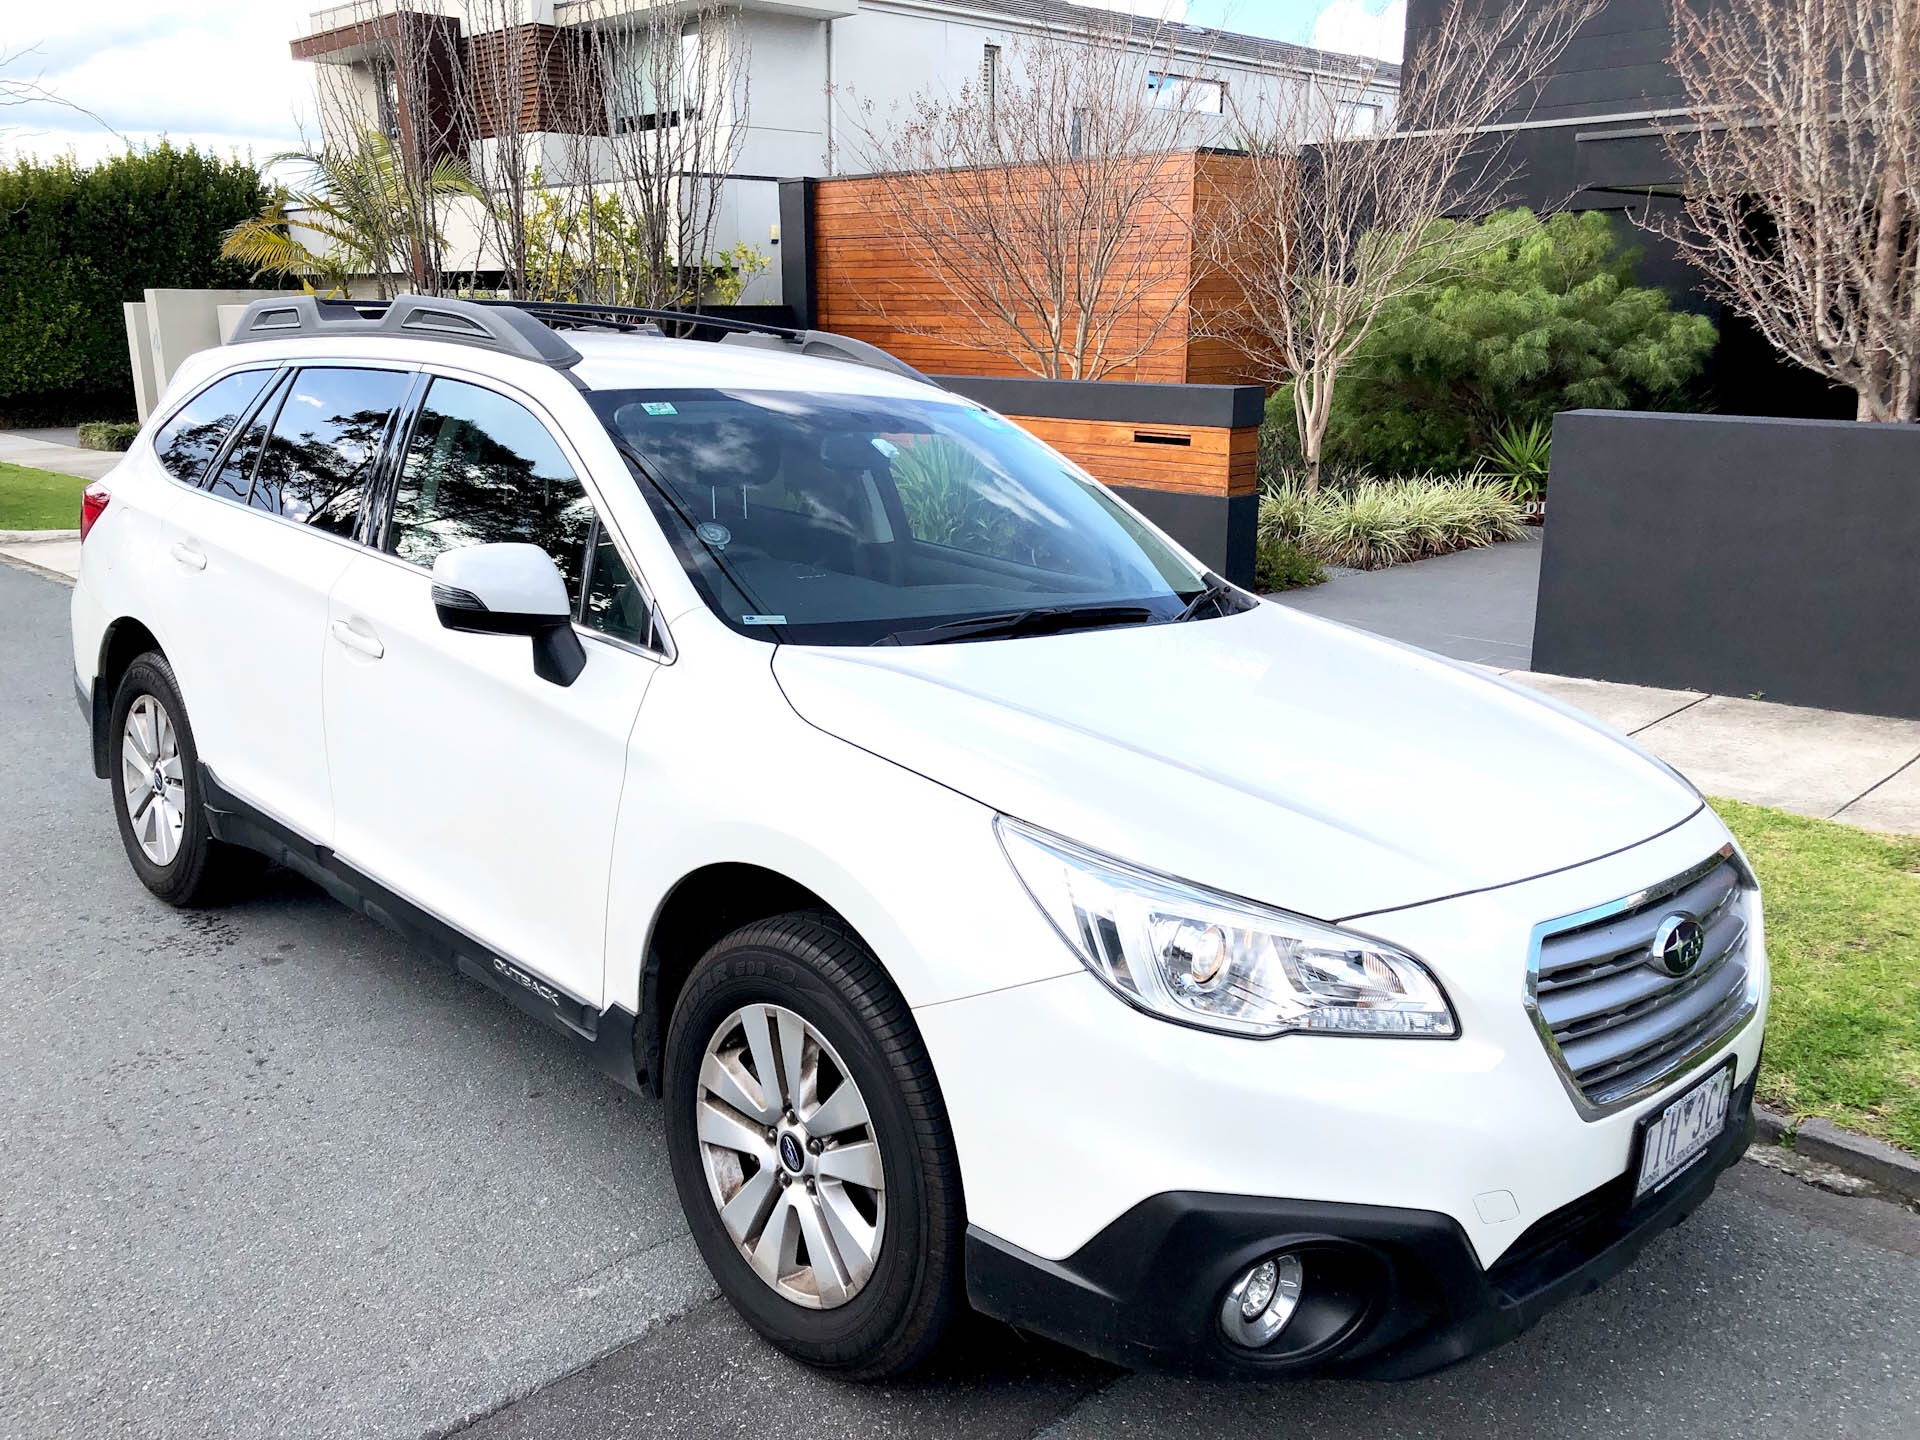 Picture of Guillaume's 2016 Subaru Outback